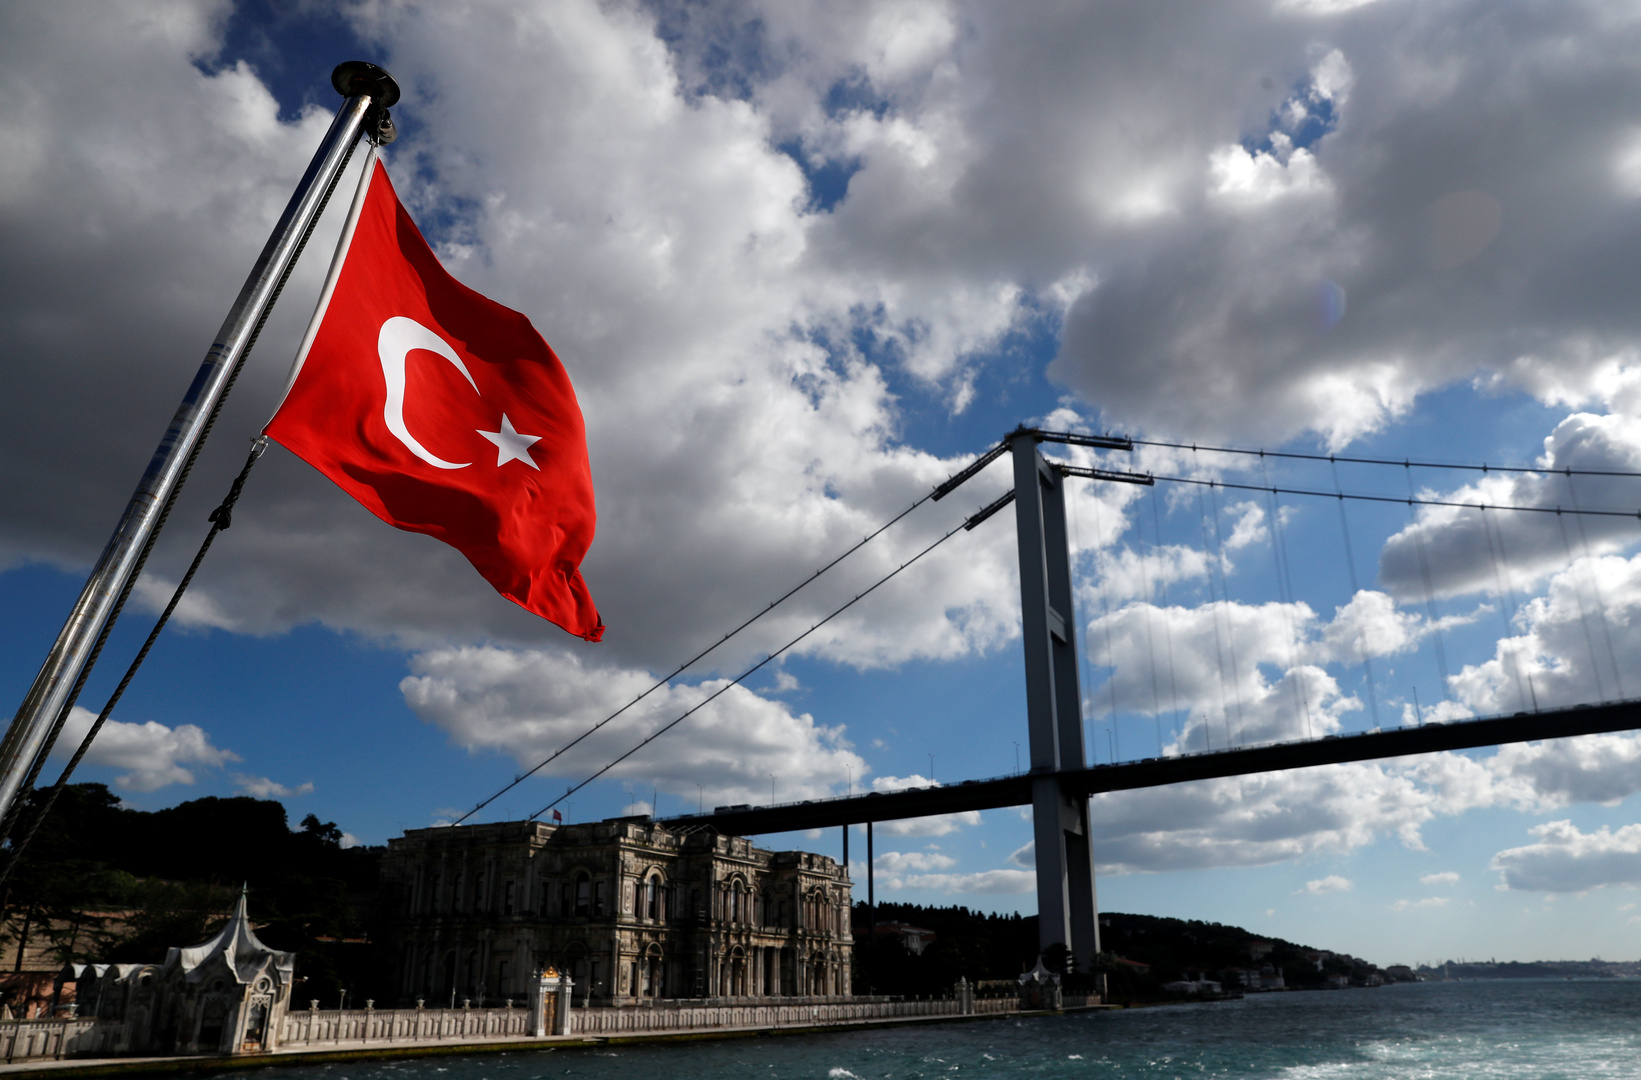 Turkey condemns the arrest by Greece of one of its consulate staff on the island of Rhodes, on allegations of espionage